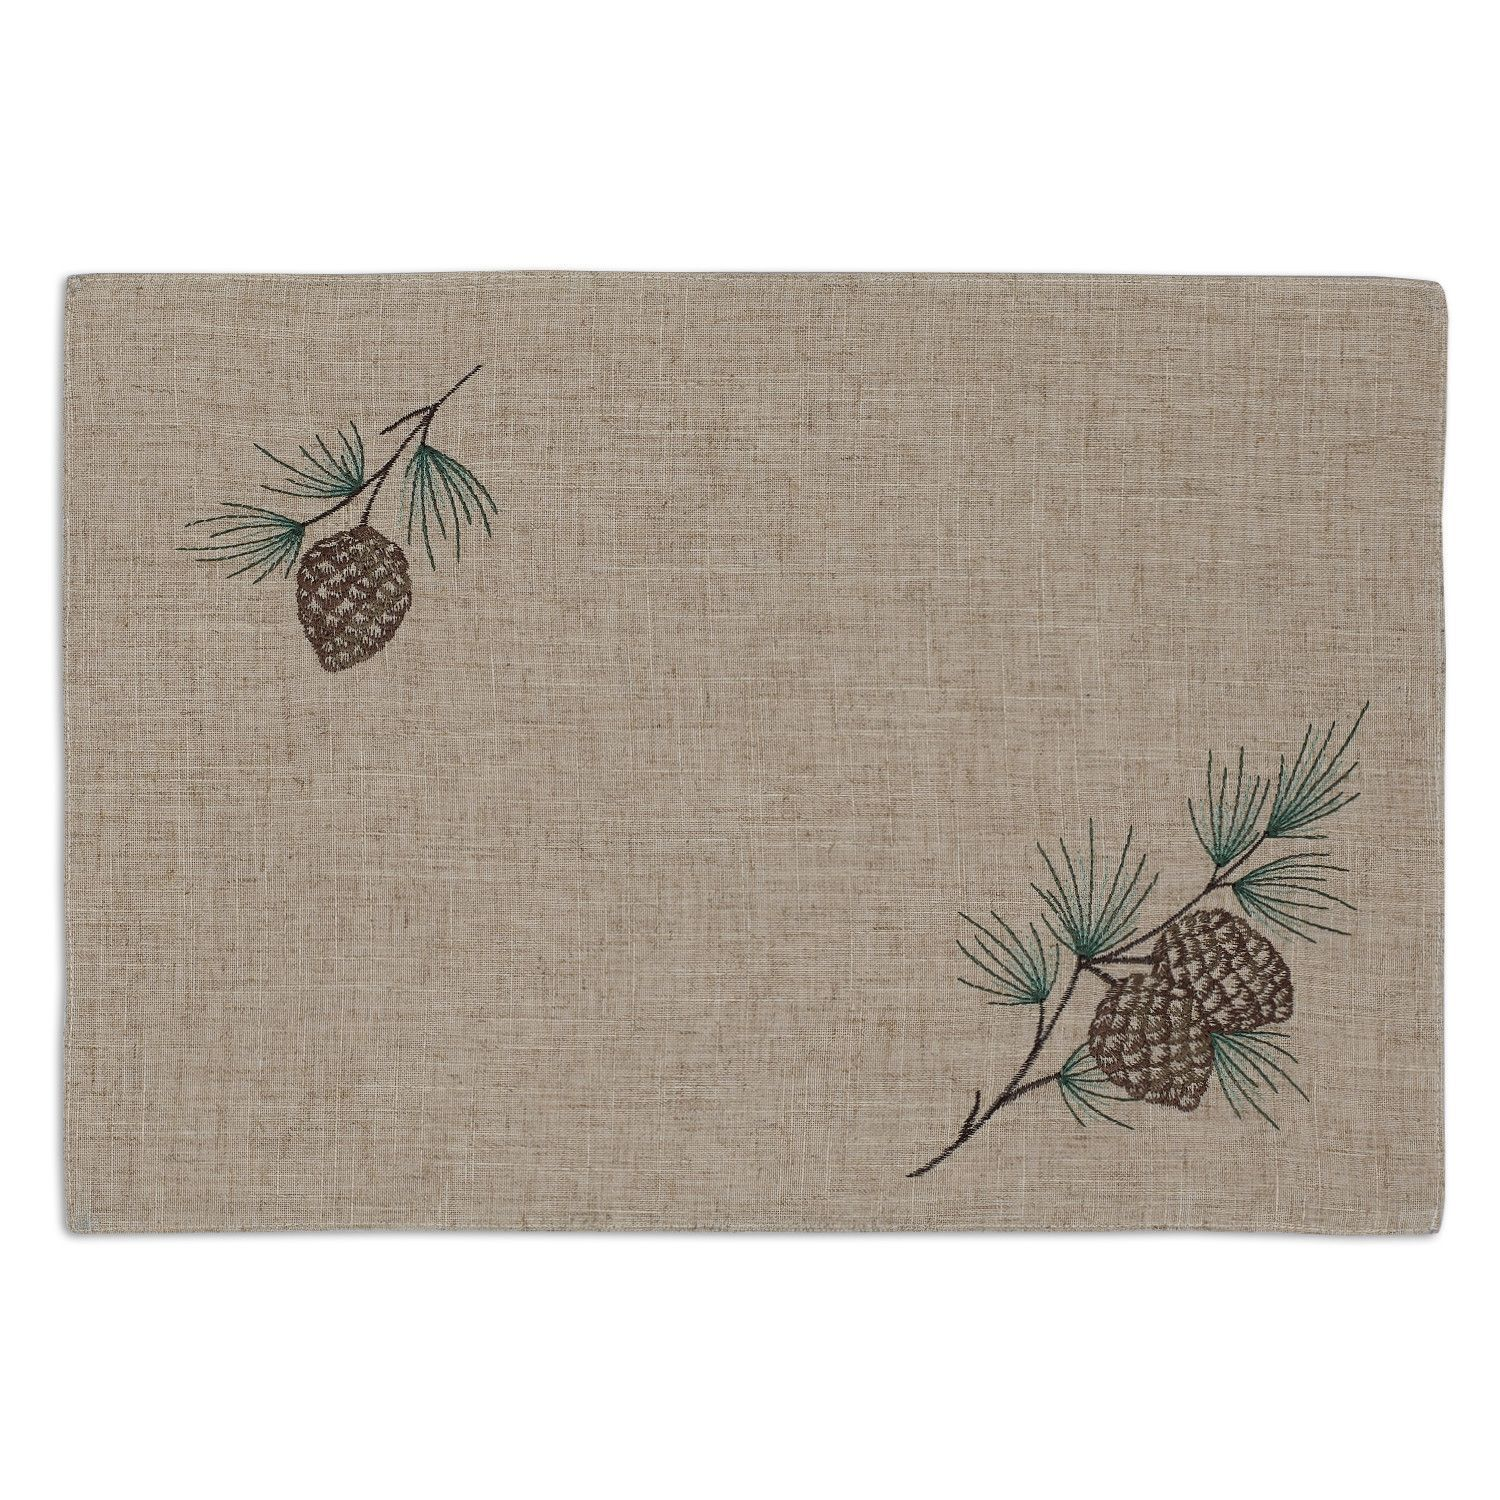 Pinecone Embroidered Placemat Wholesale Home Decor Placemats Wholesale Gifts